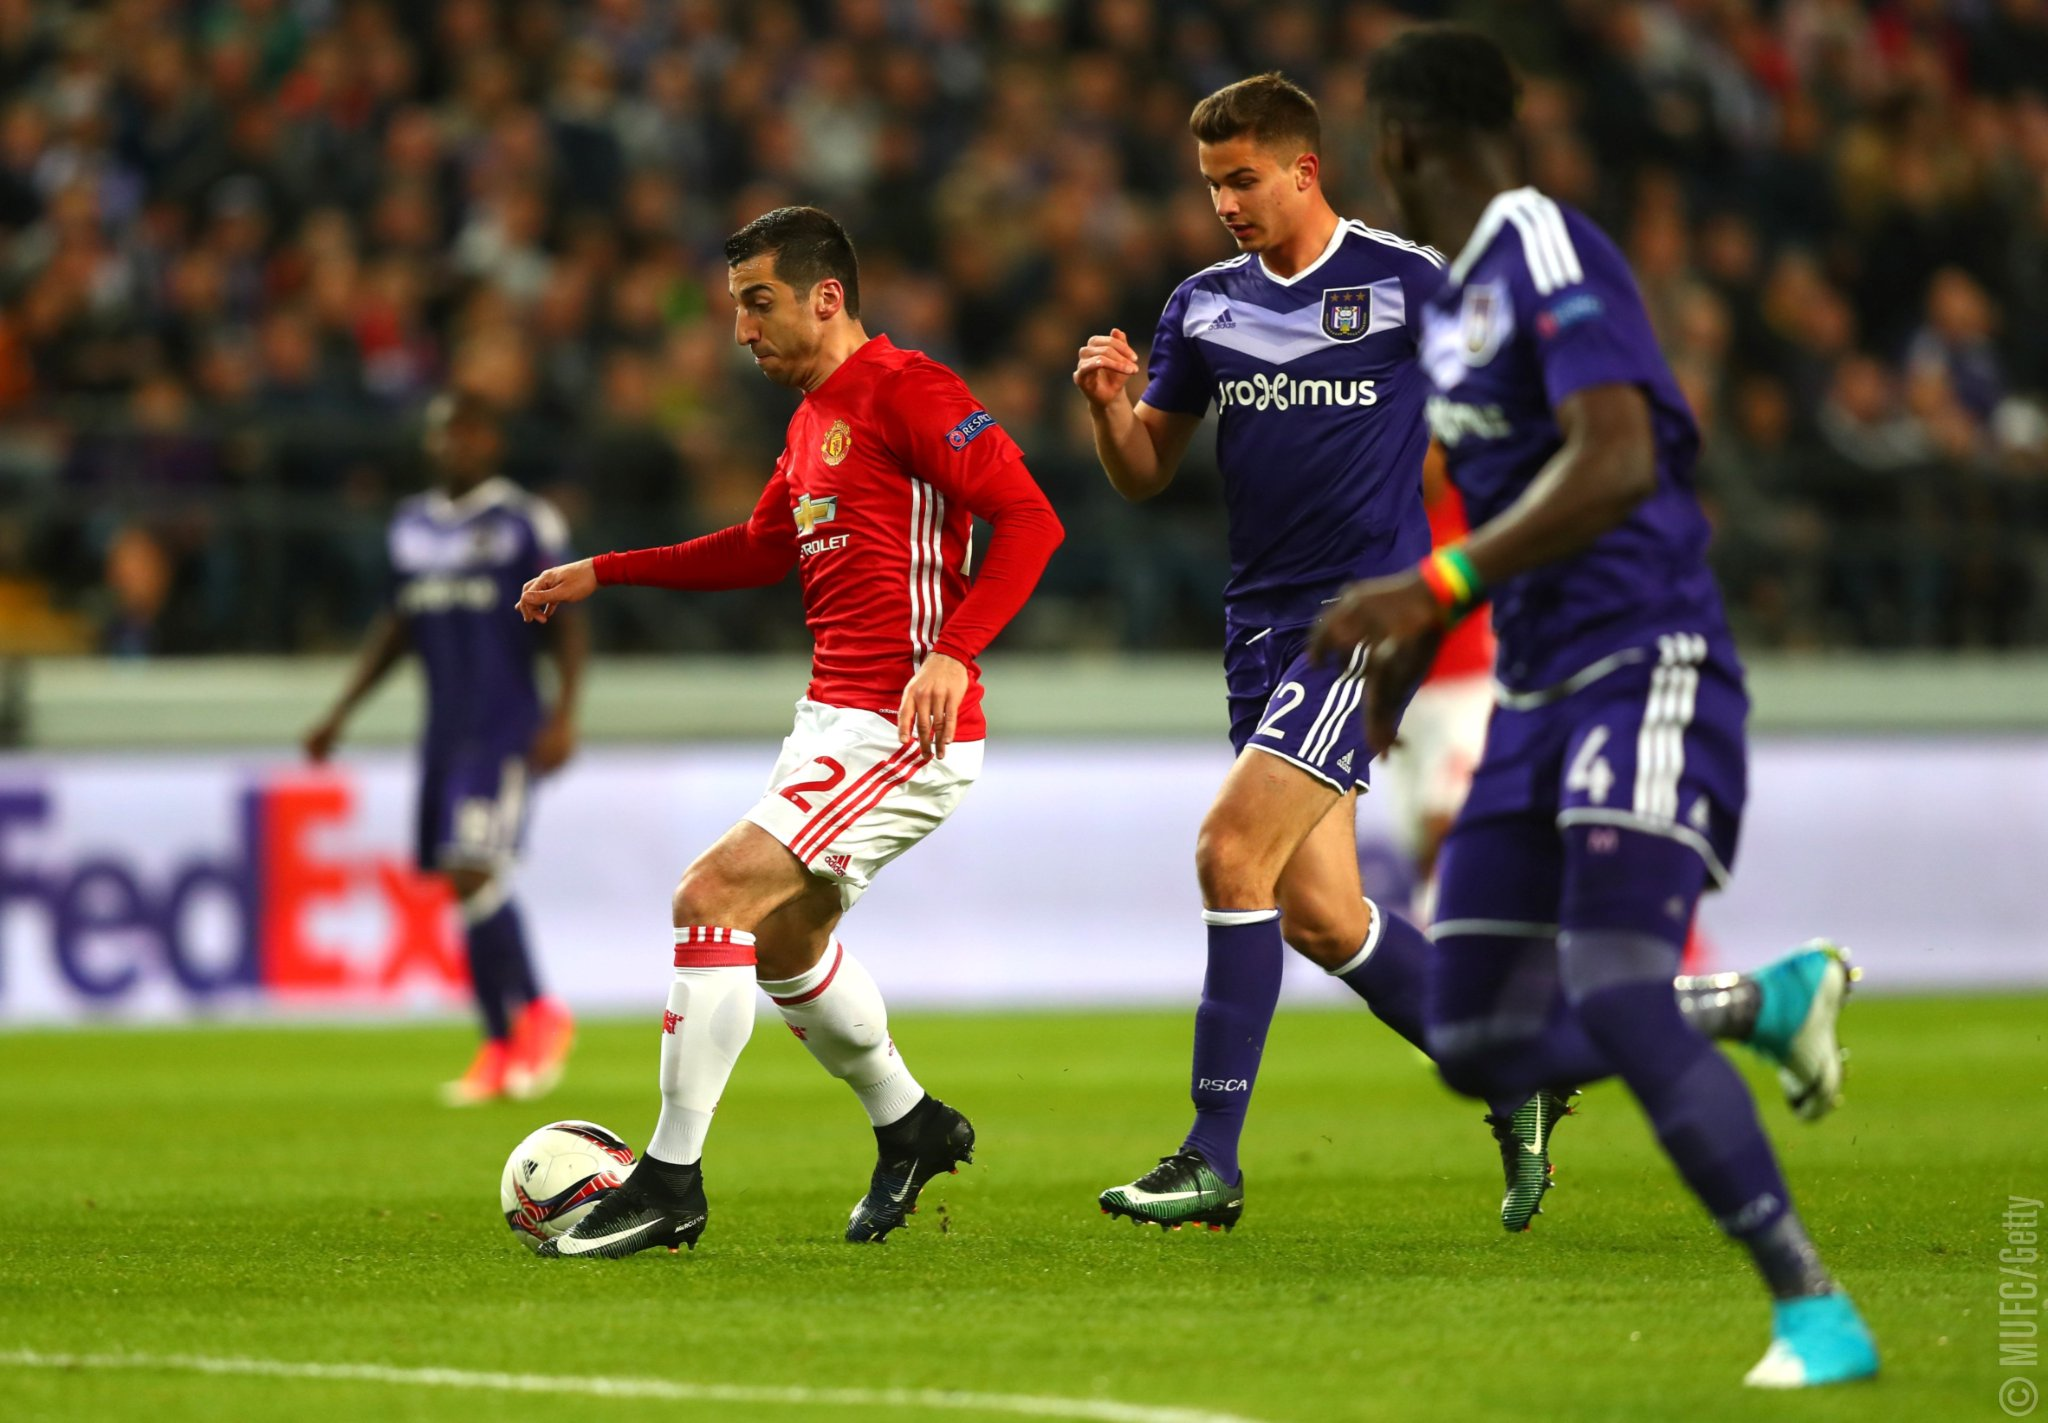 Europa League: Anderlecht Hold Man United As Celta Vigo, Ajax Win